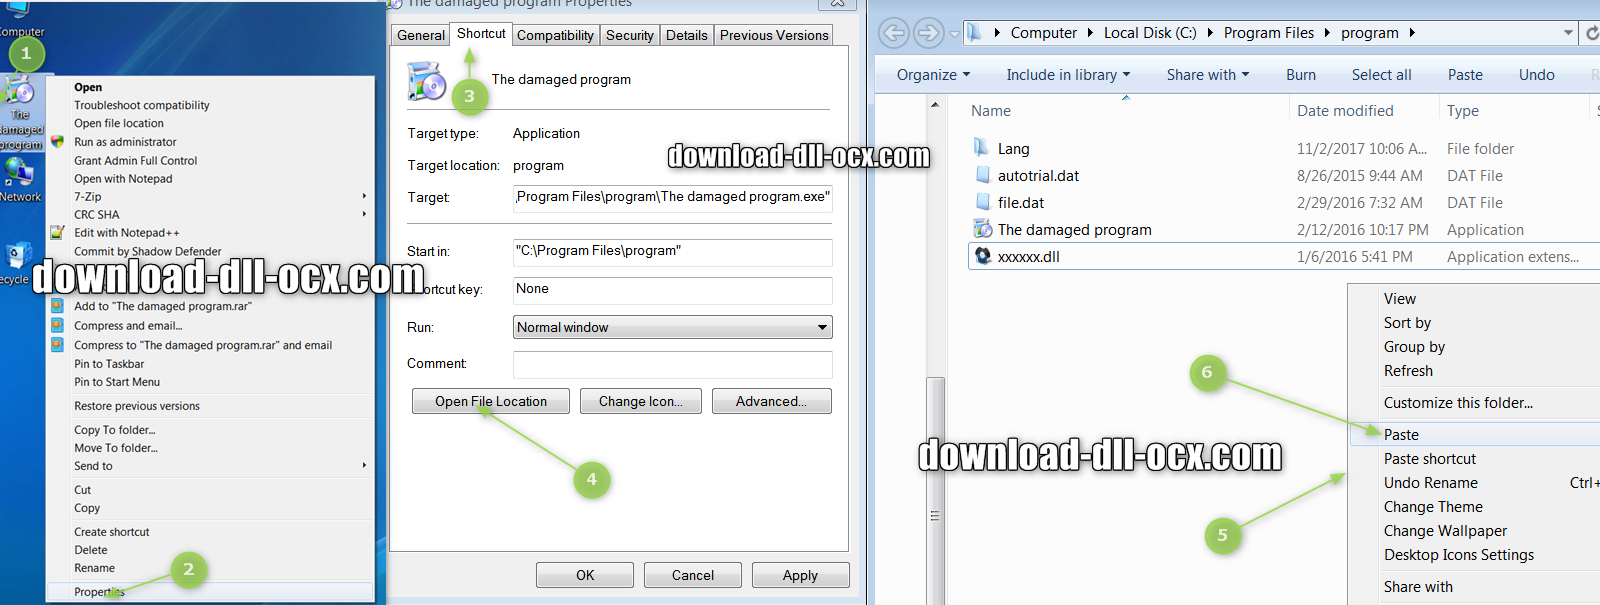 how to install ENVELOPR.dll file? for fix missing